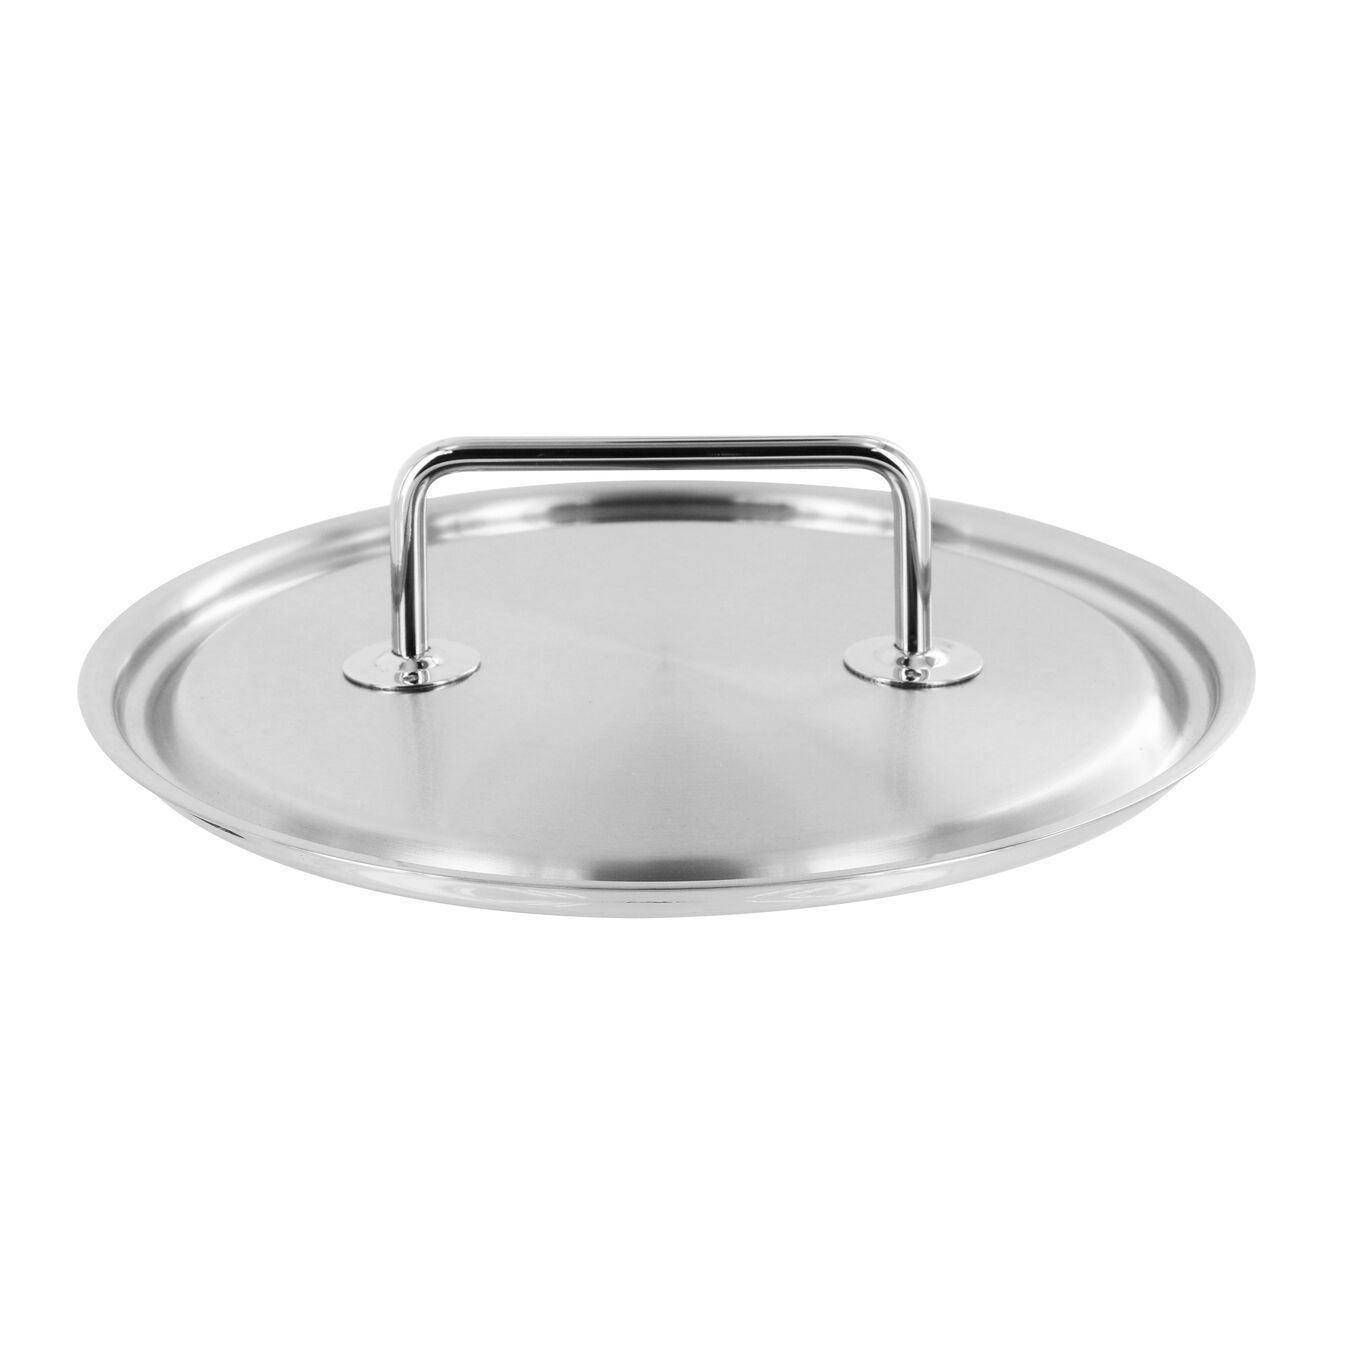 Lid, 24 cm | round | 18/10 Stainless Steel,,large 1